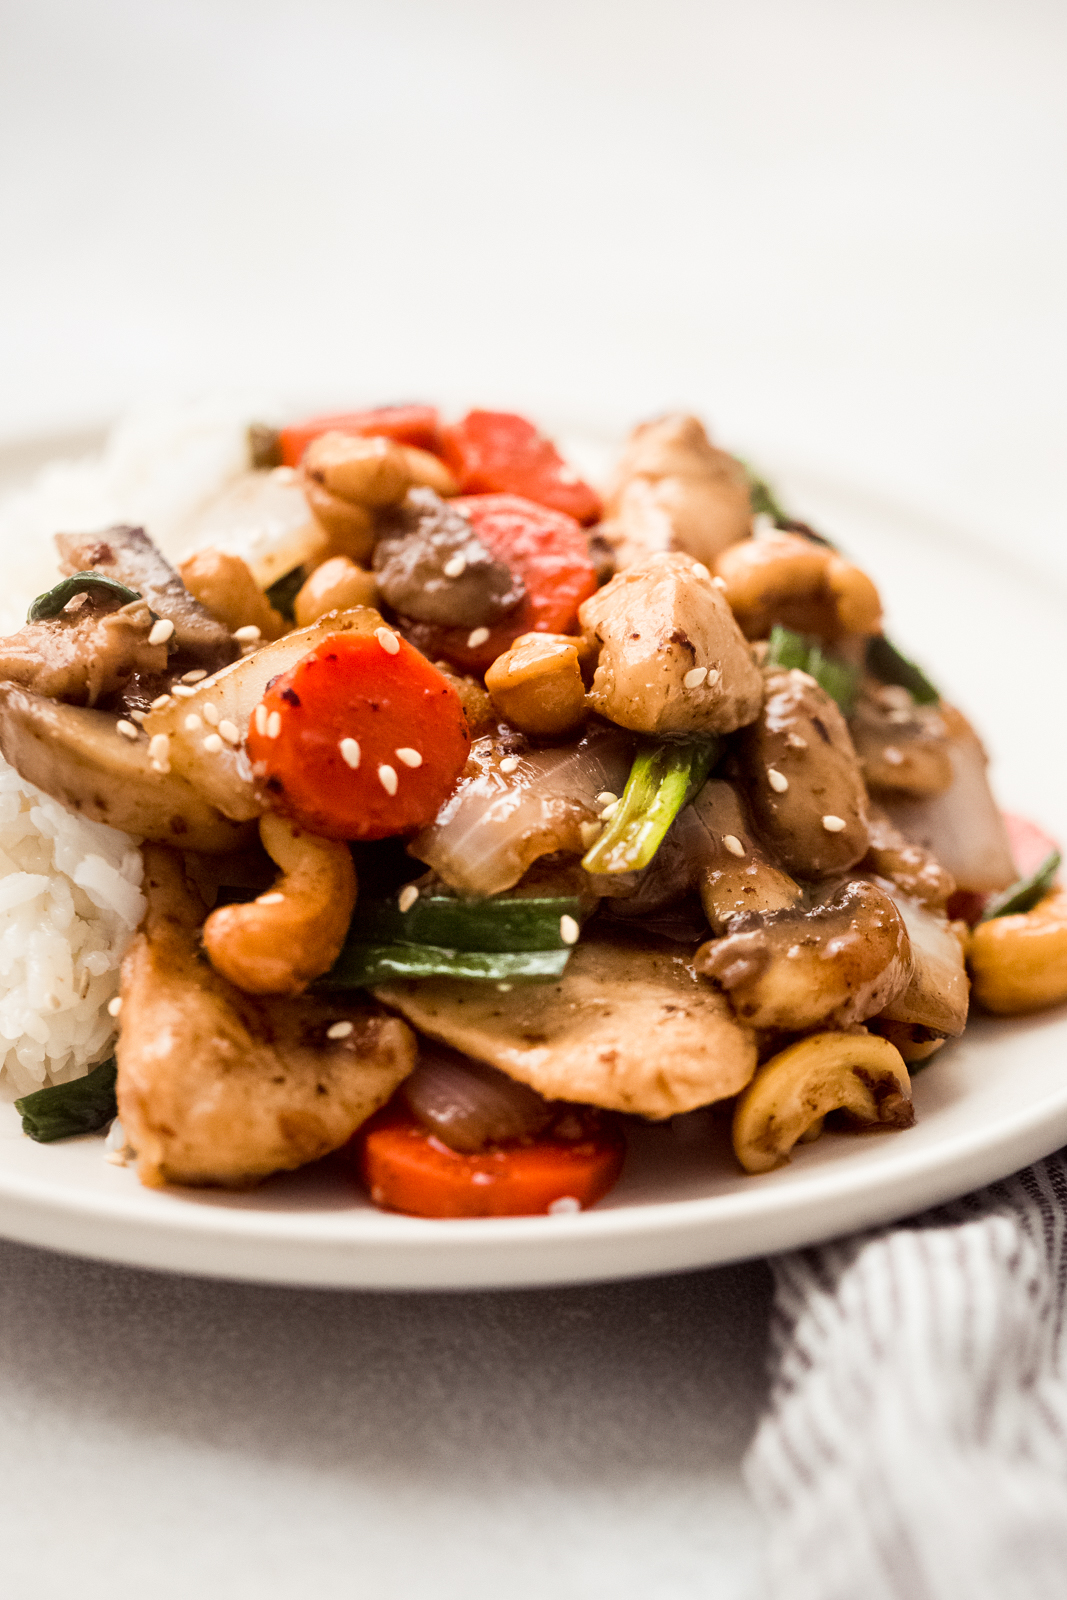 Thai Cashew Chicken with carrots, cashews, and scallions on plate